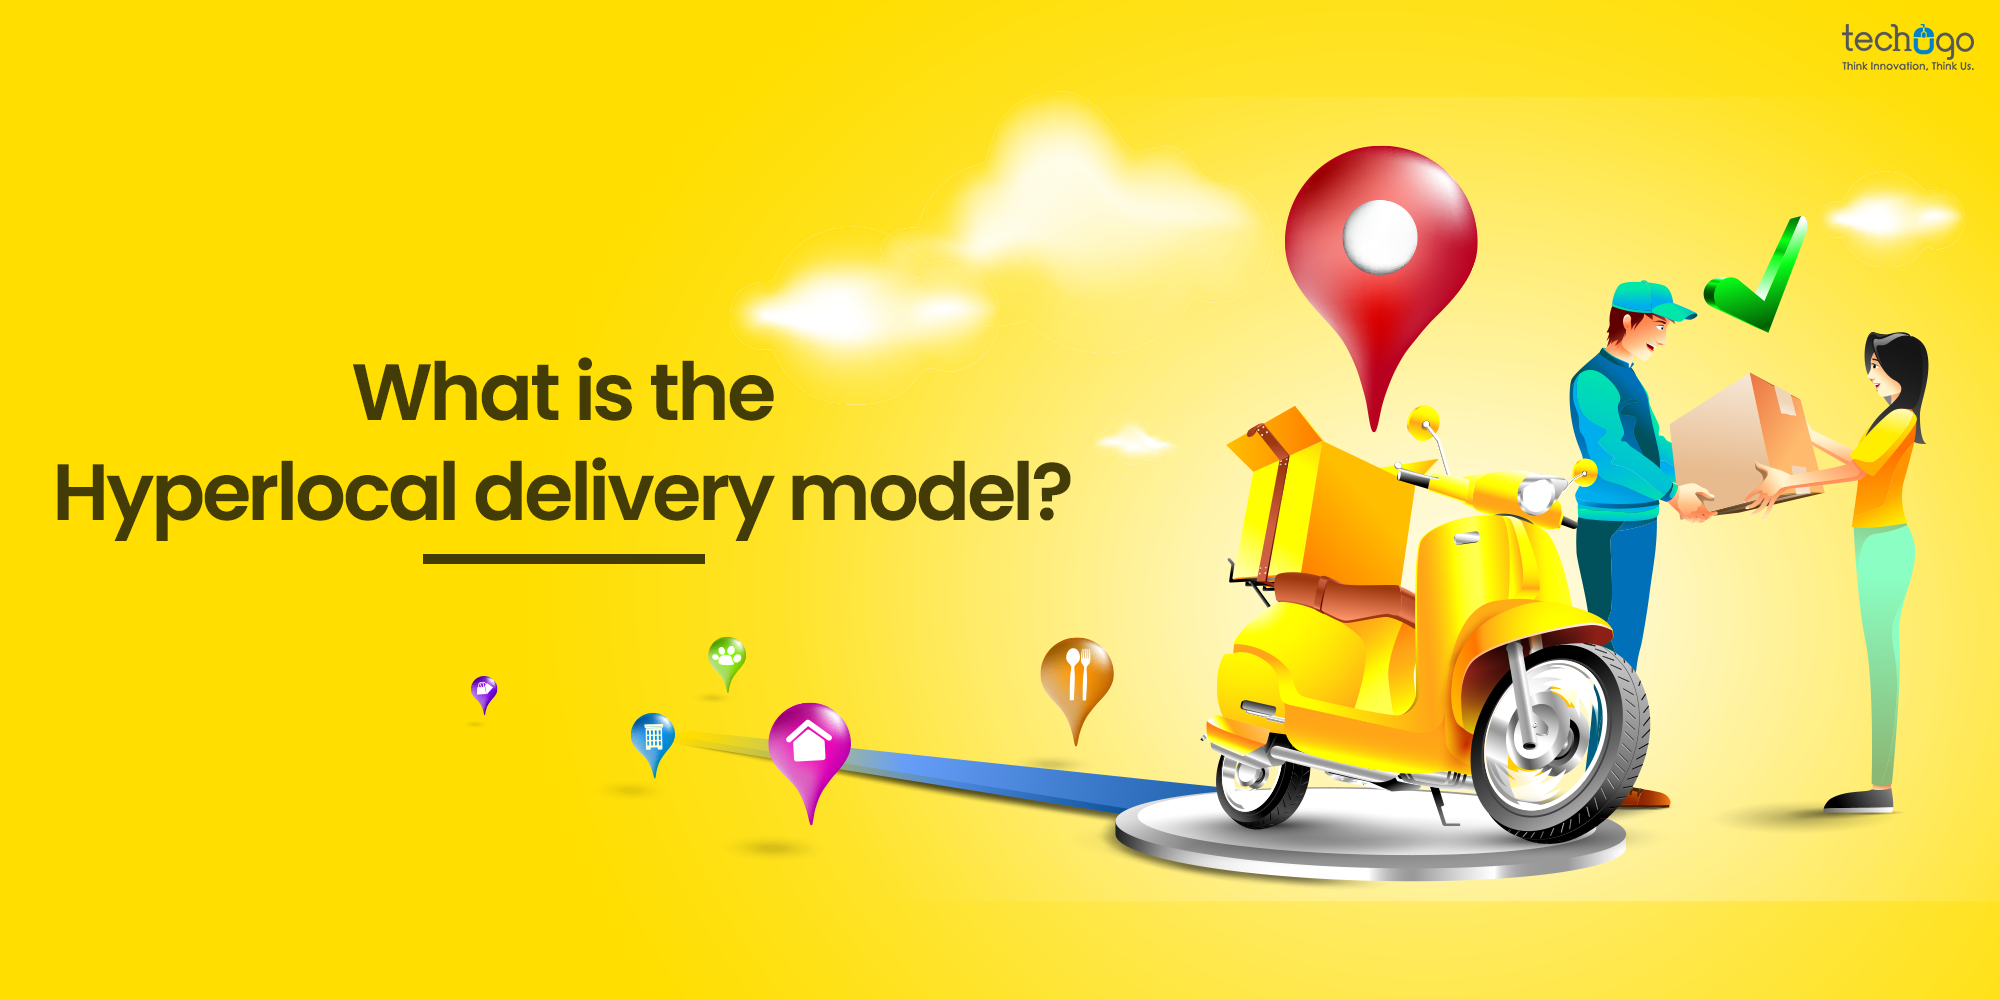 Hyperlocal delivery model